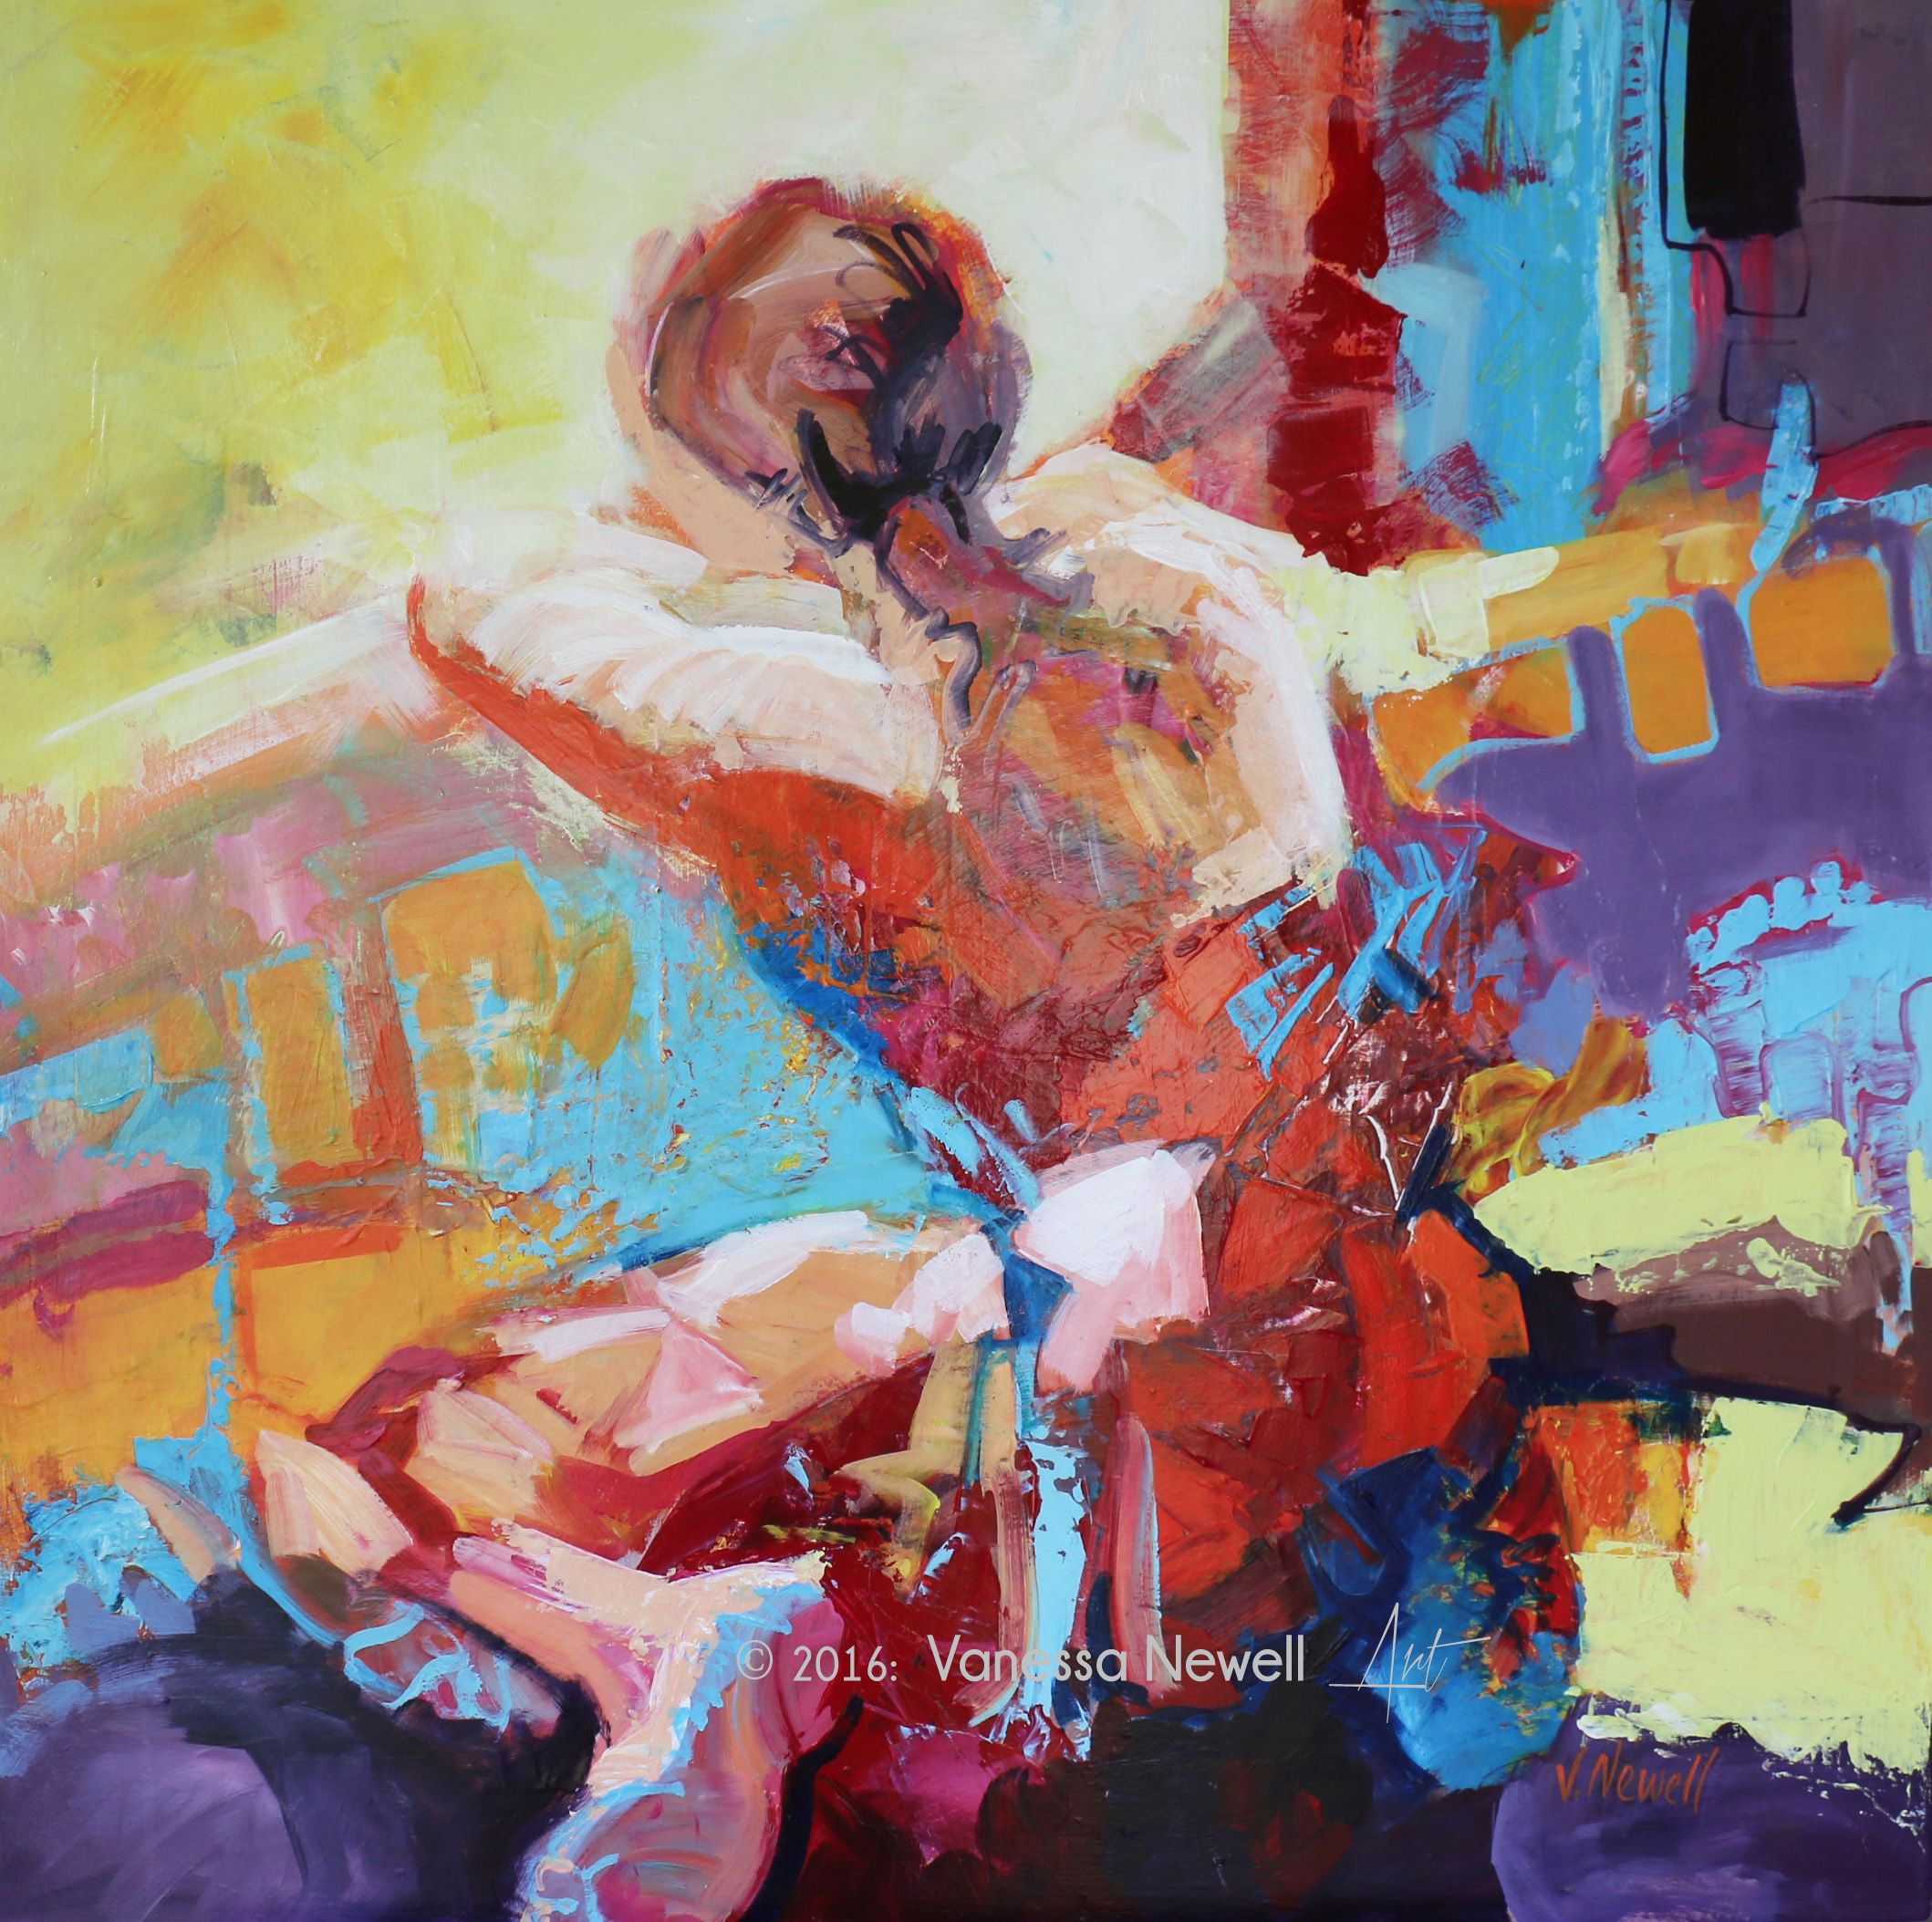 'Early riser' by Vanessa Newell, acrylic on canvas, 75 x 75cm. (acrylic painting figurative abstract contemporary)